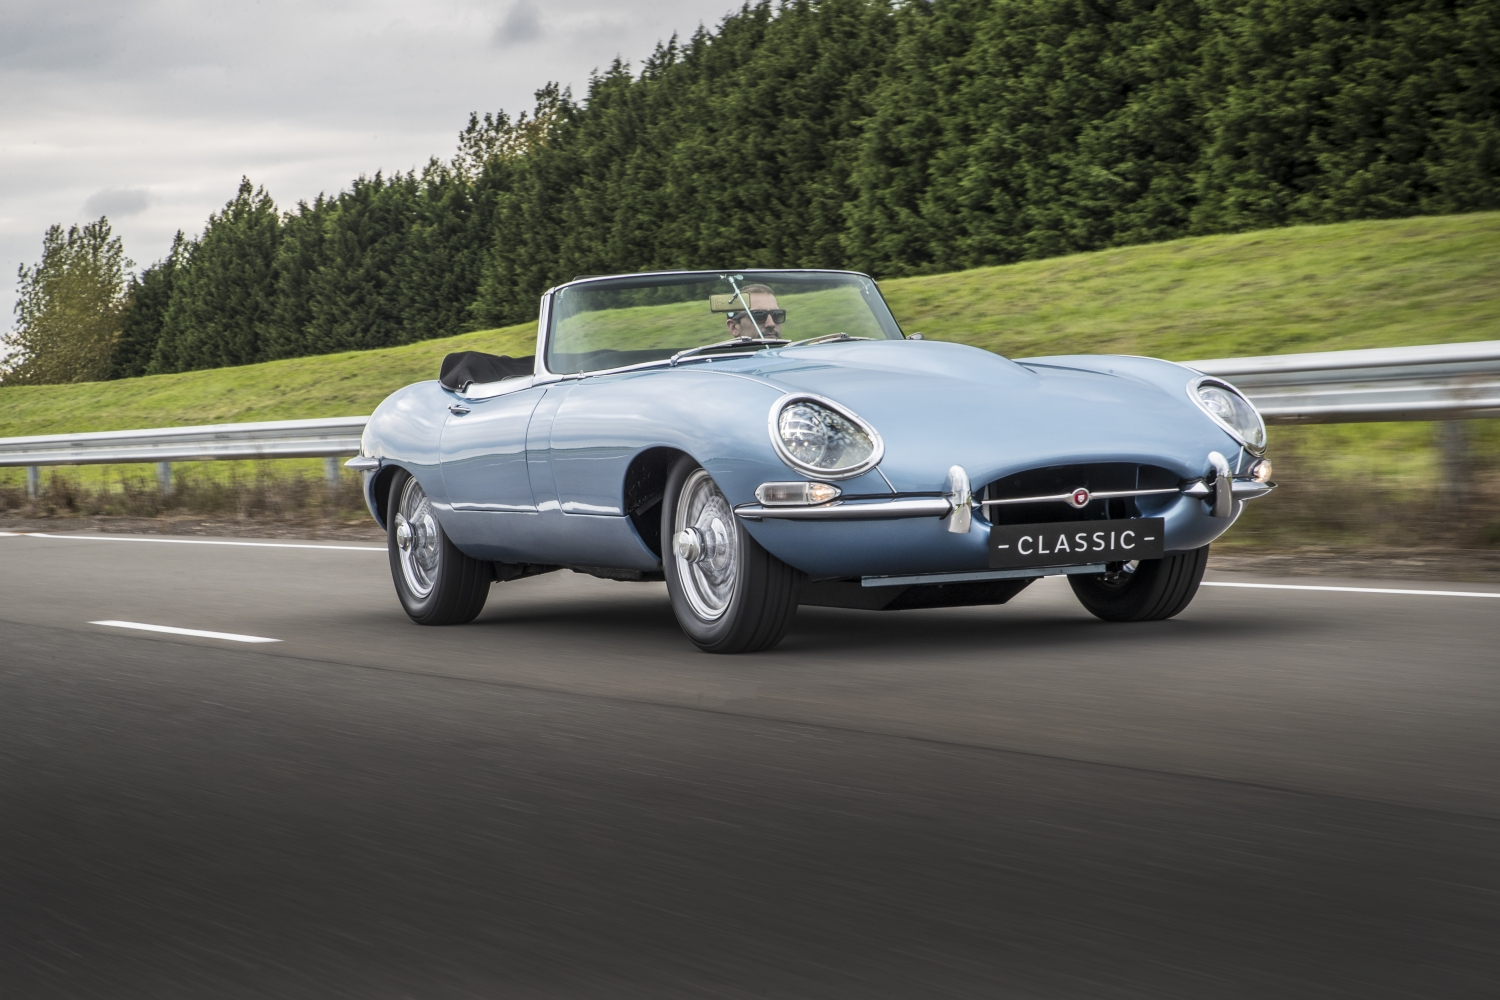 """JAGUAR E-TYPE ZERO: """"THE MOST BEAUTIFUL ELECTRIC CAR IN THE WORLD"""""""